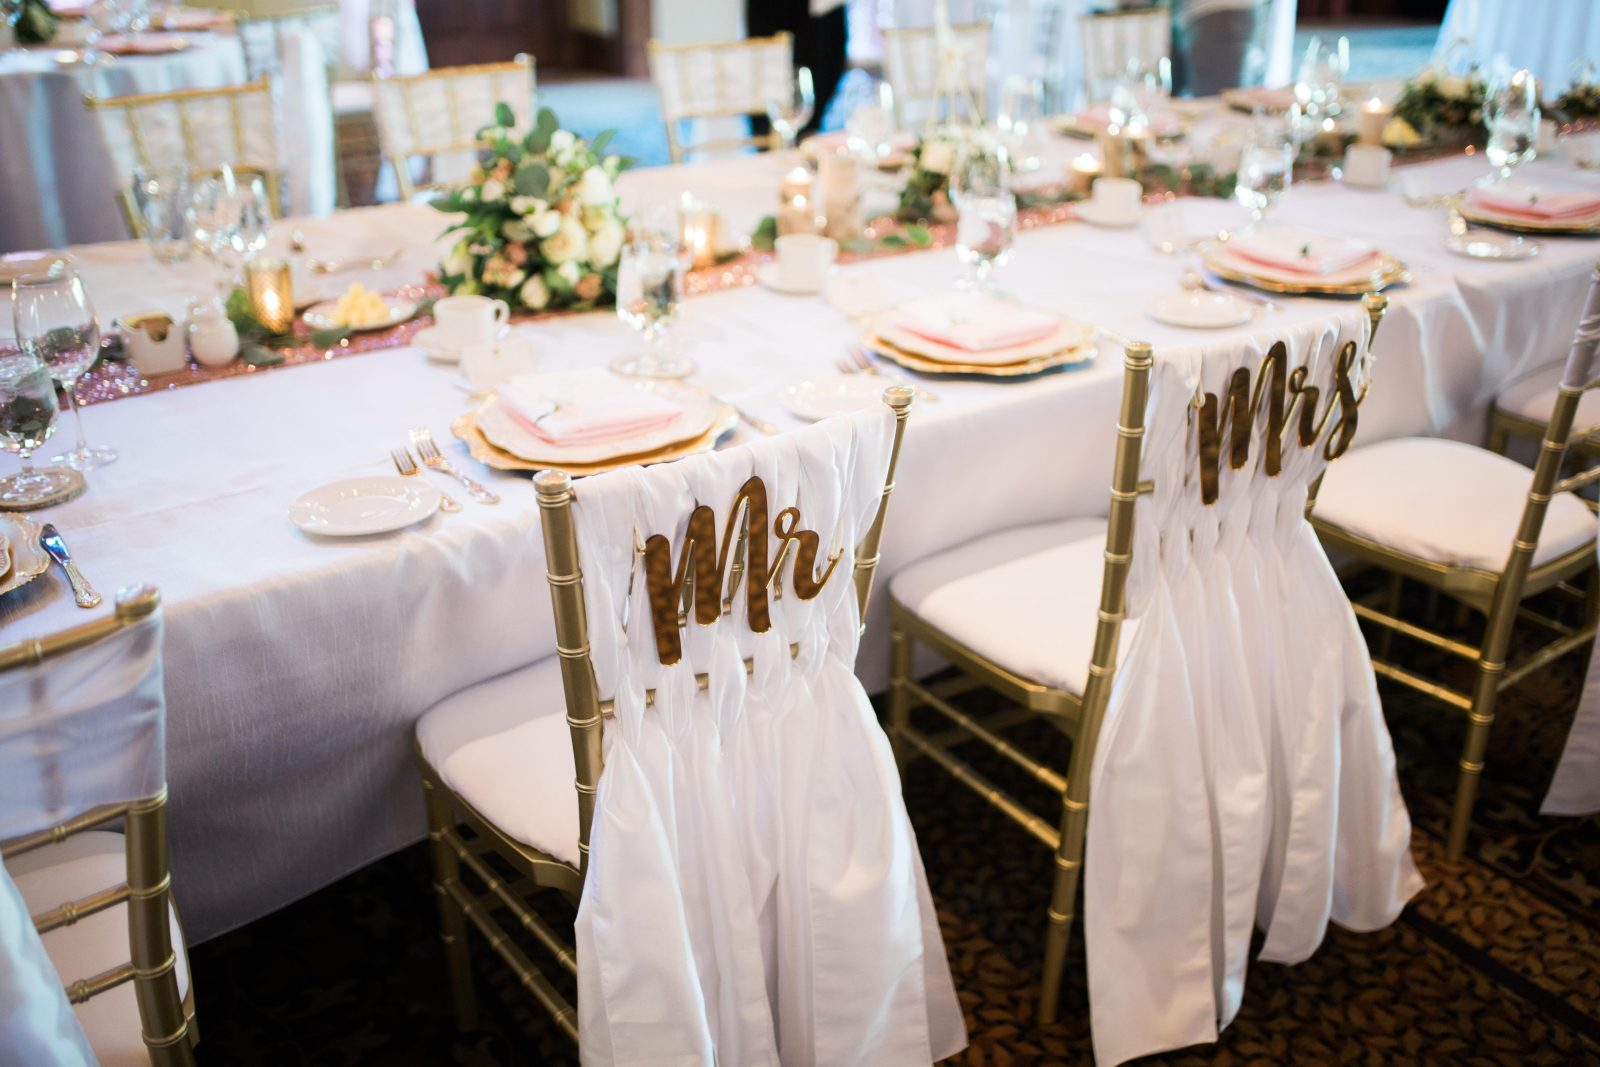 The Bride and Groom Chairs